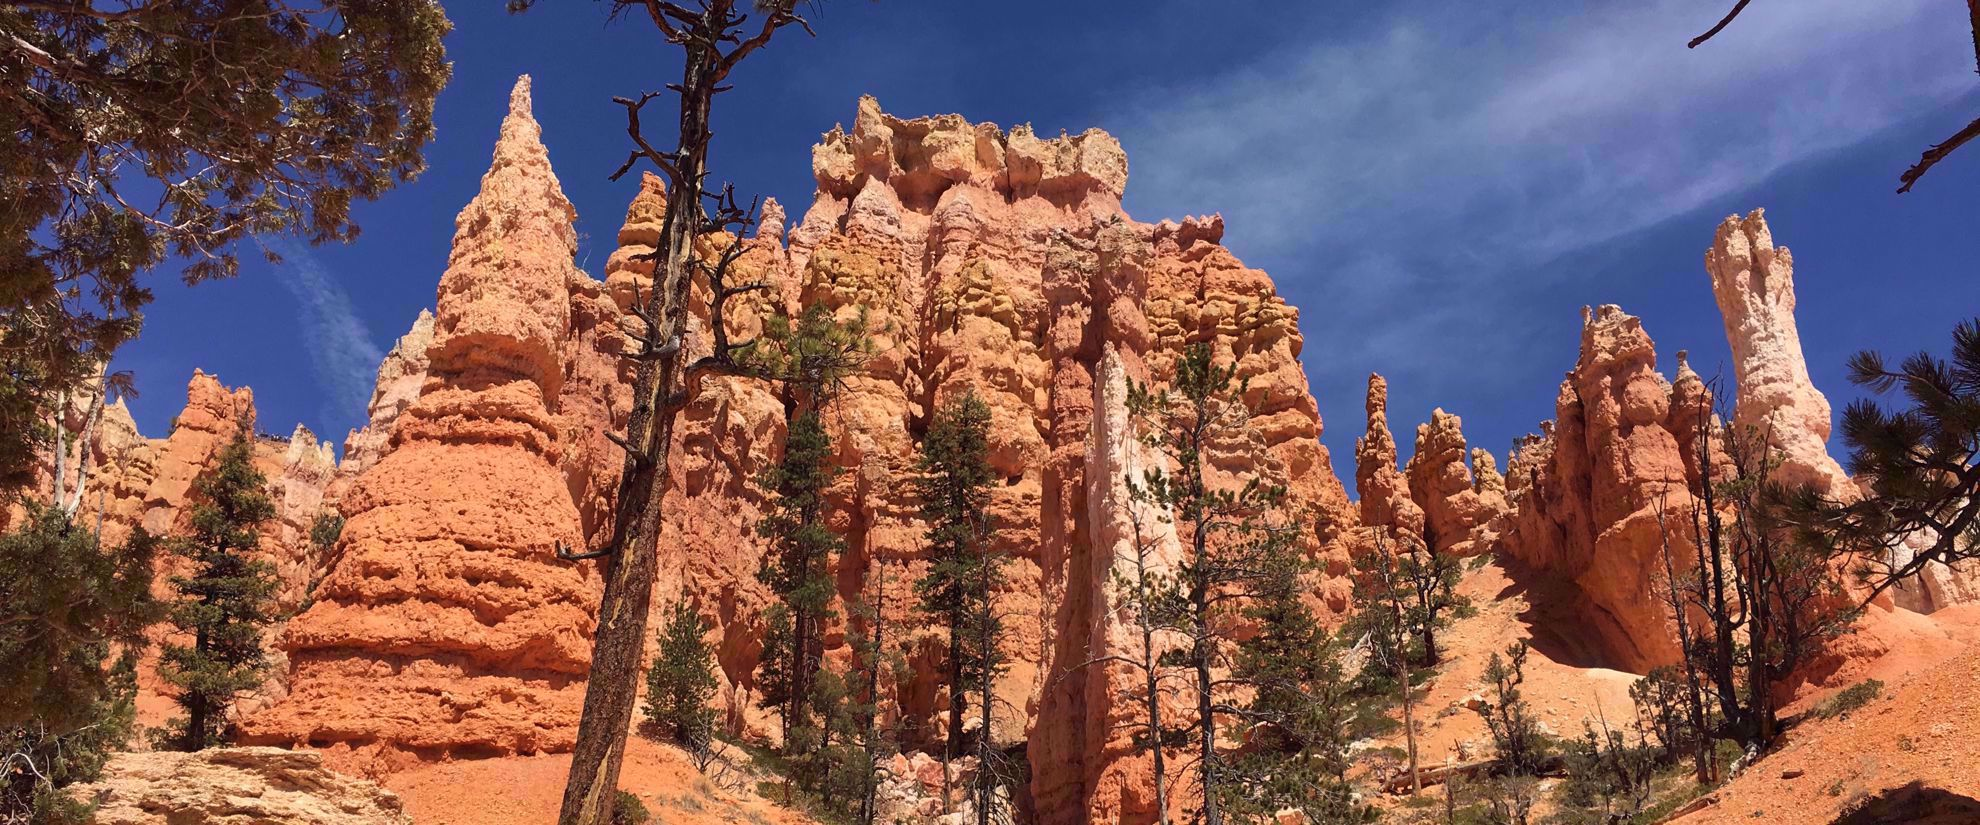 red rock formations in utah national park